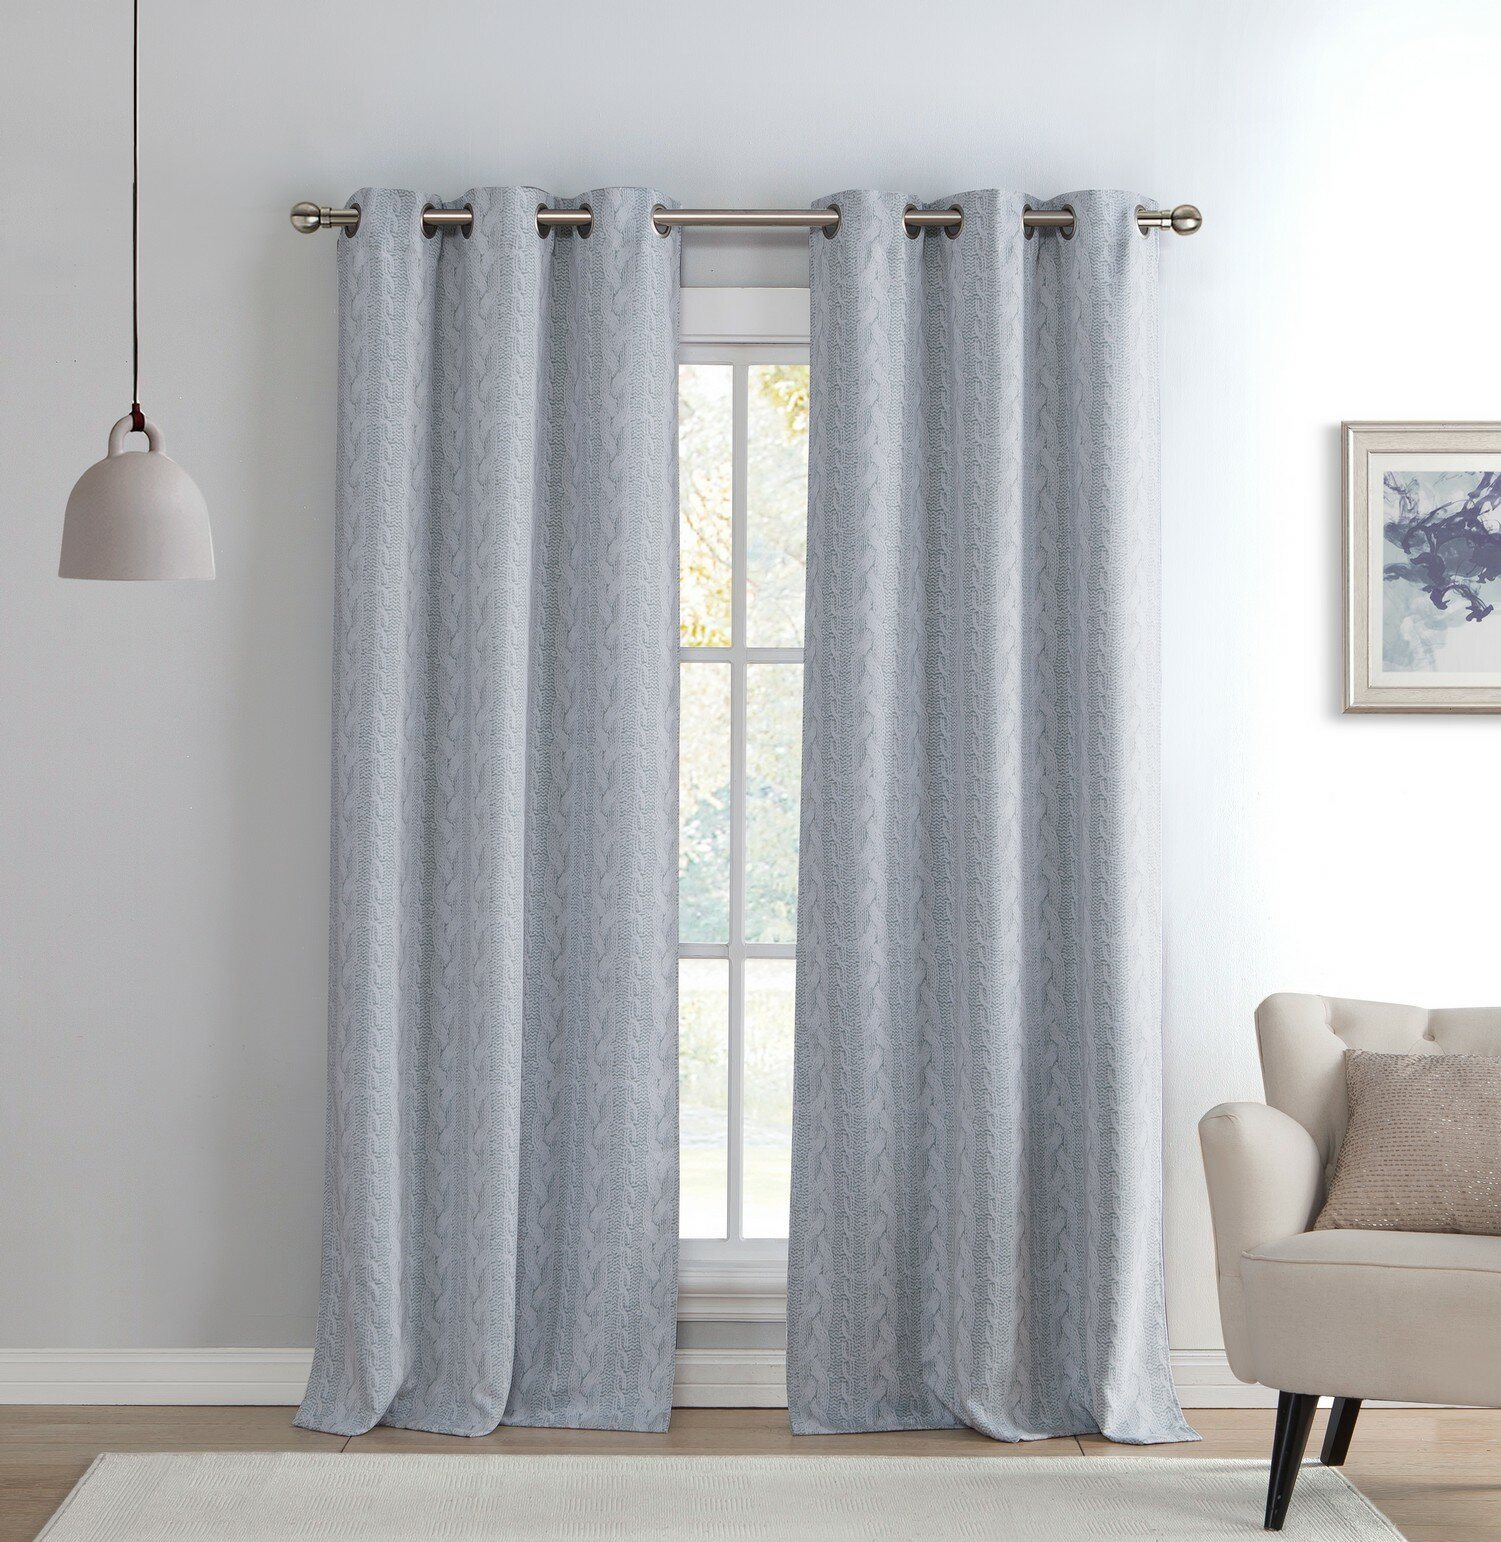 Davis Knit Geometric Blackout Grommet Curtain Panels With Regard To Davis Patio Grommet Top Single Curtain Panels (View 10 of 20)